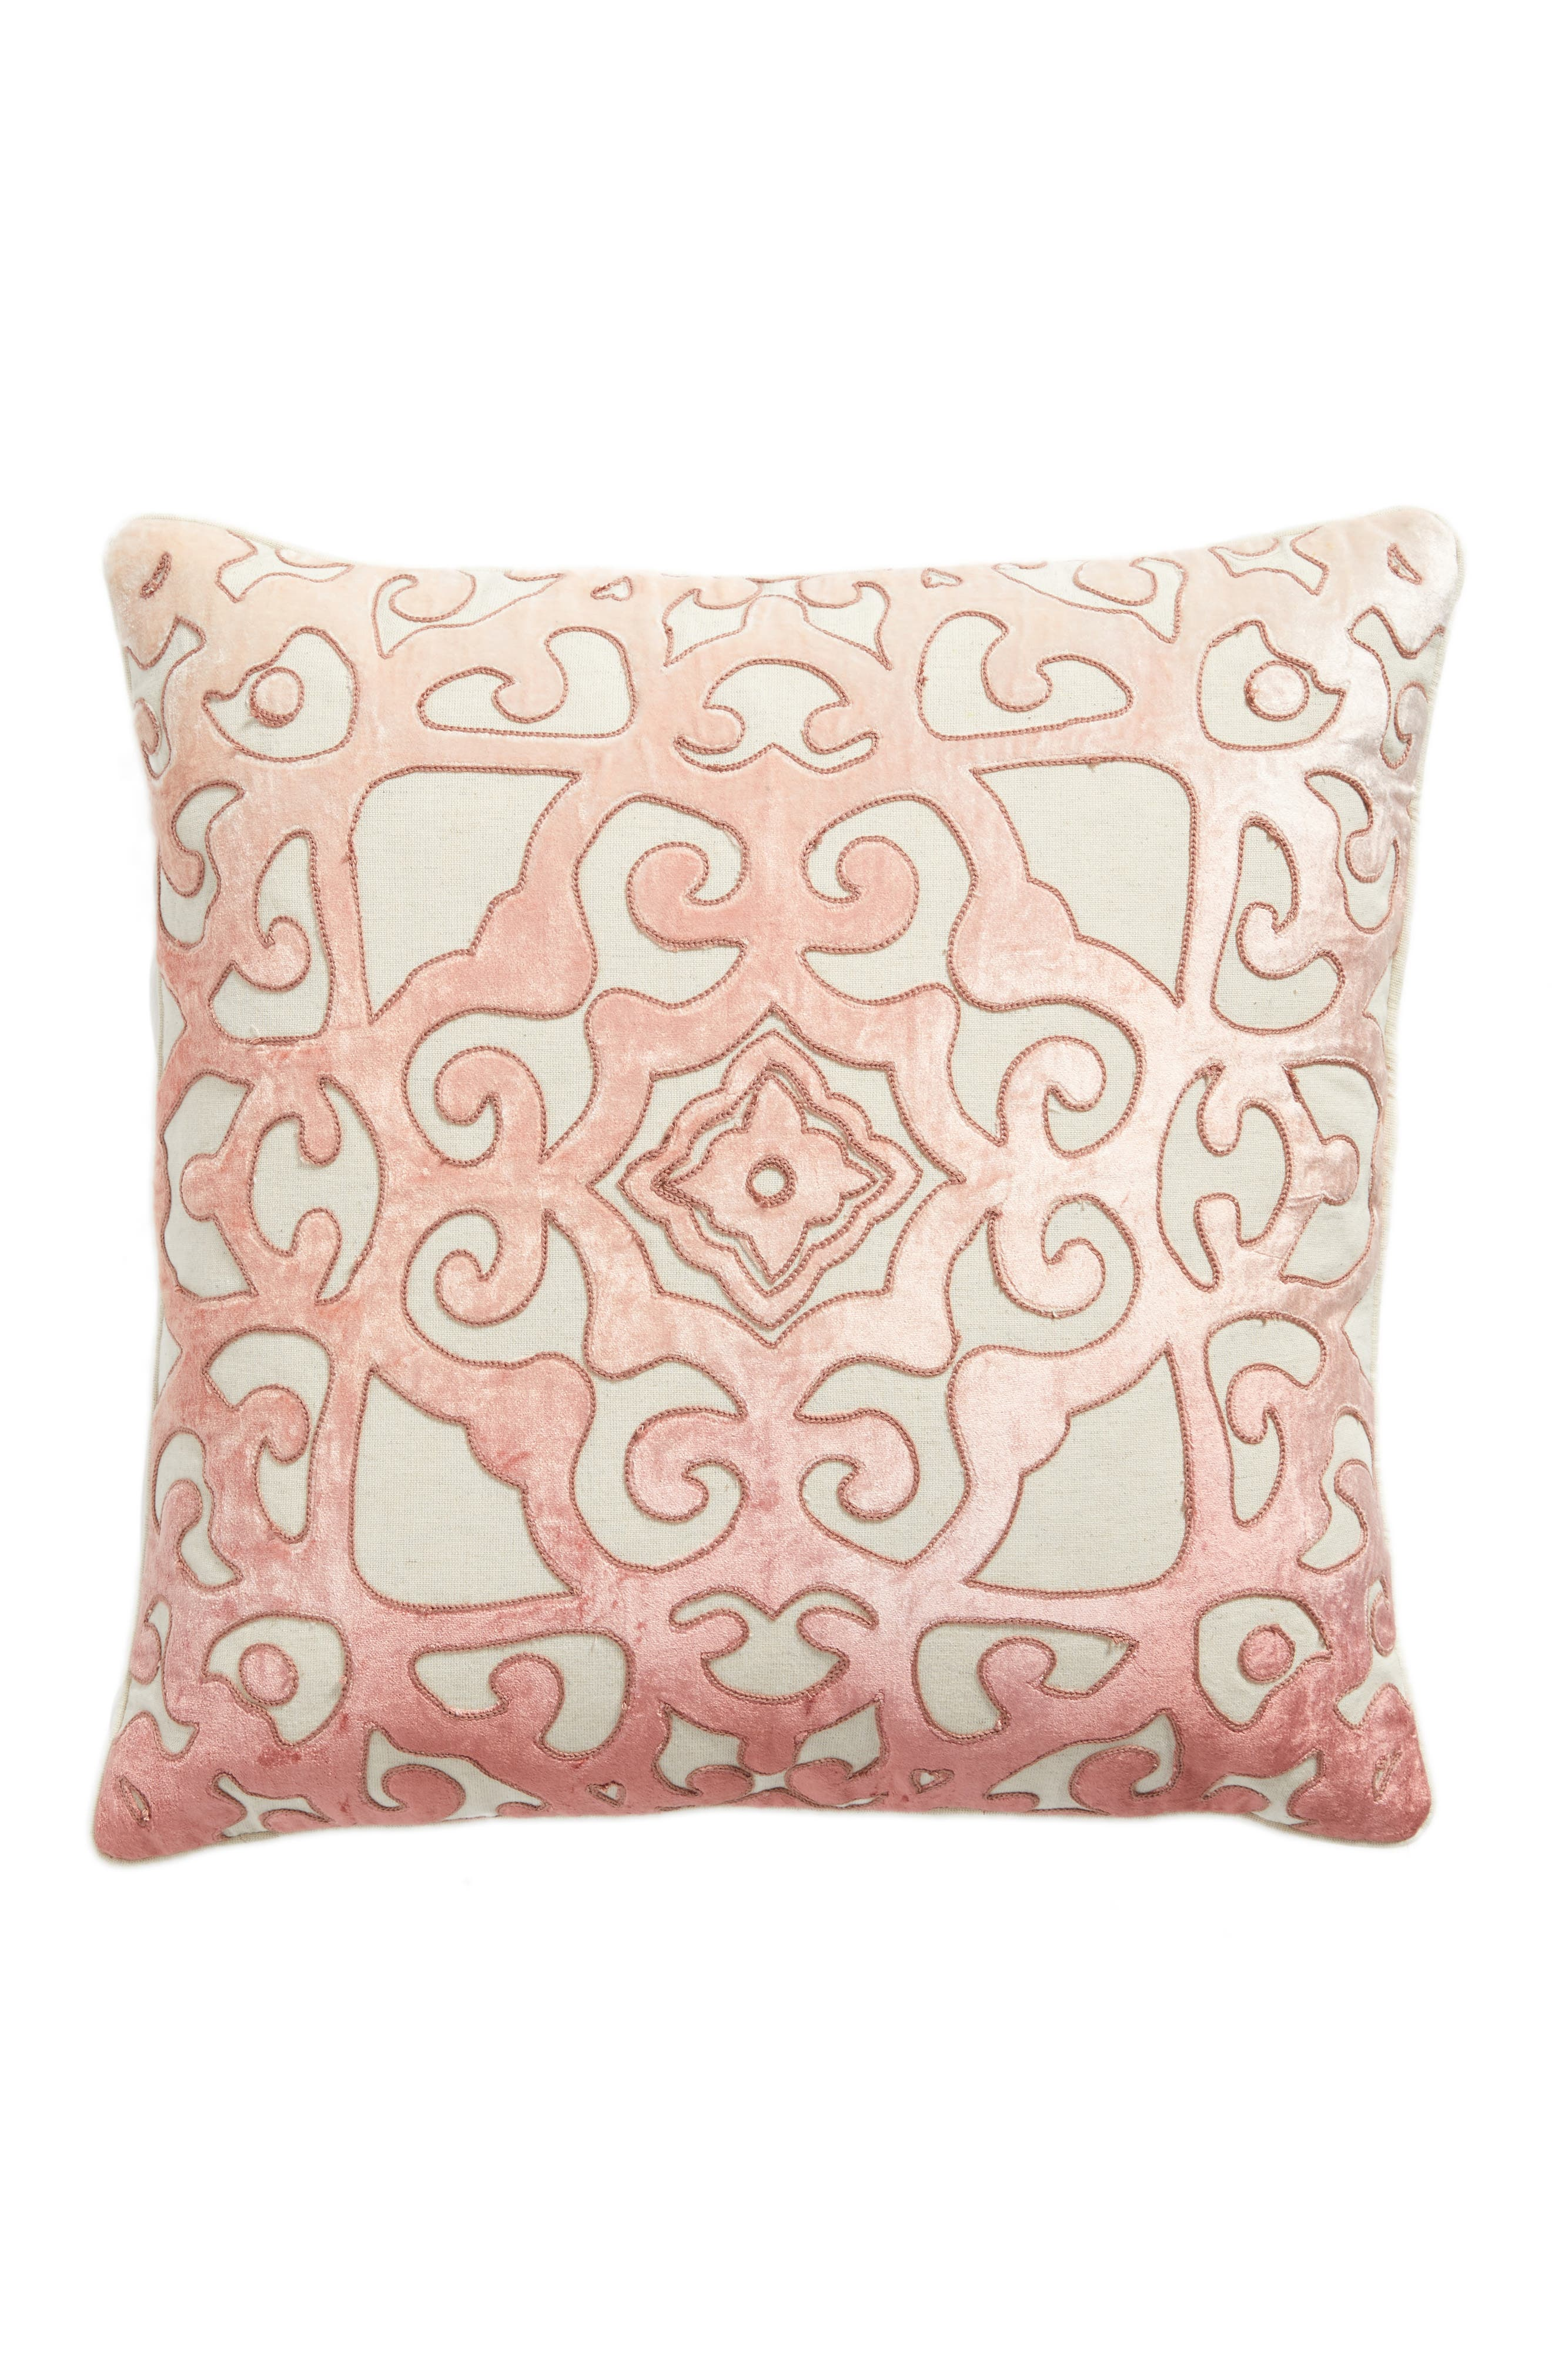 Nordstrom at Home Velvet Cutout Accent Pillow